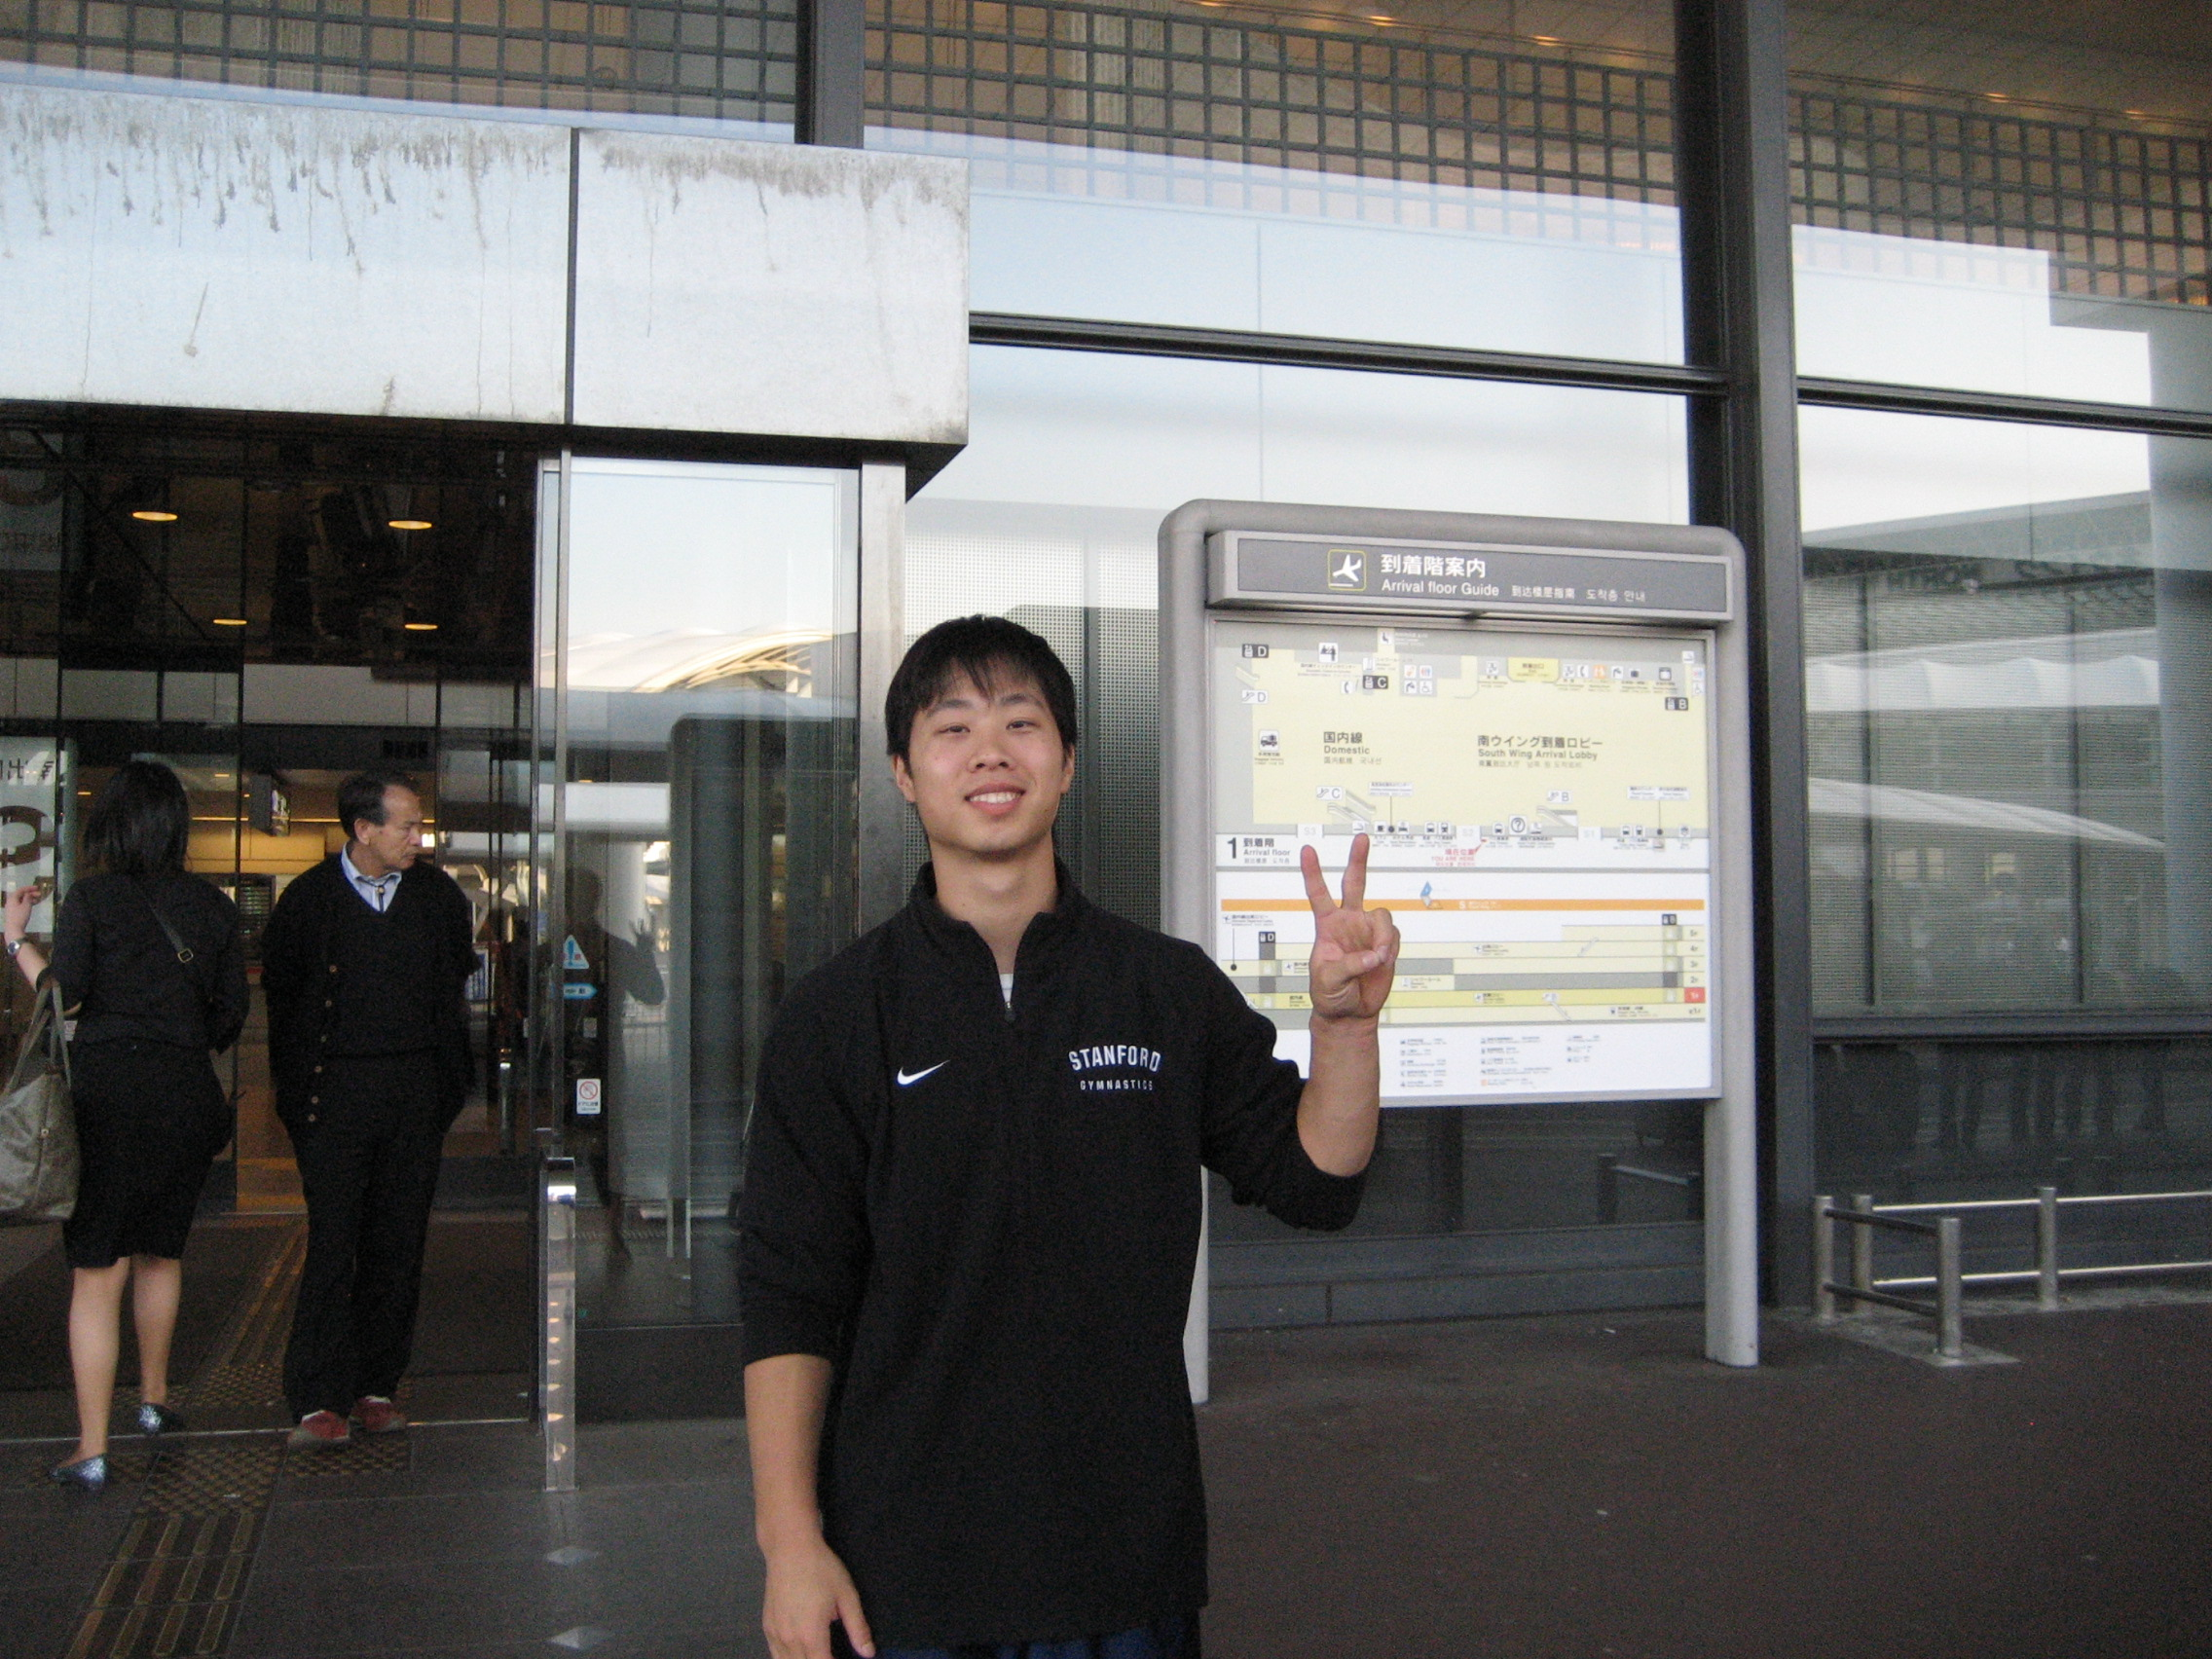 I'm finally here! Throwin' up the peace sign. Of course, I'm in Asia! It'll be my default sign for the next 3 months.